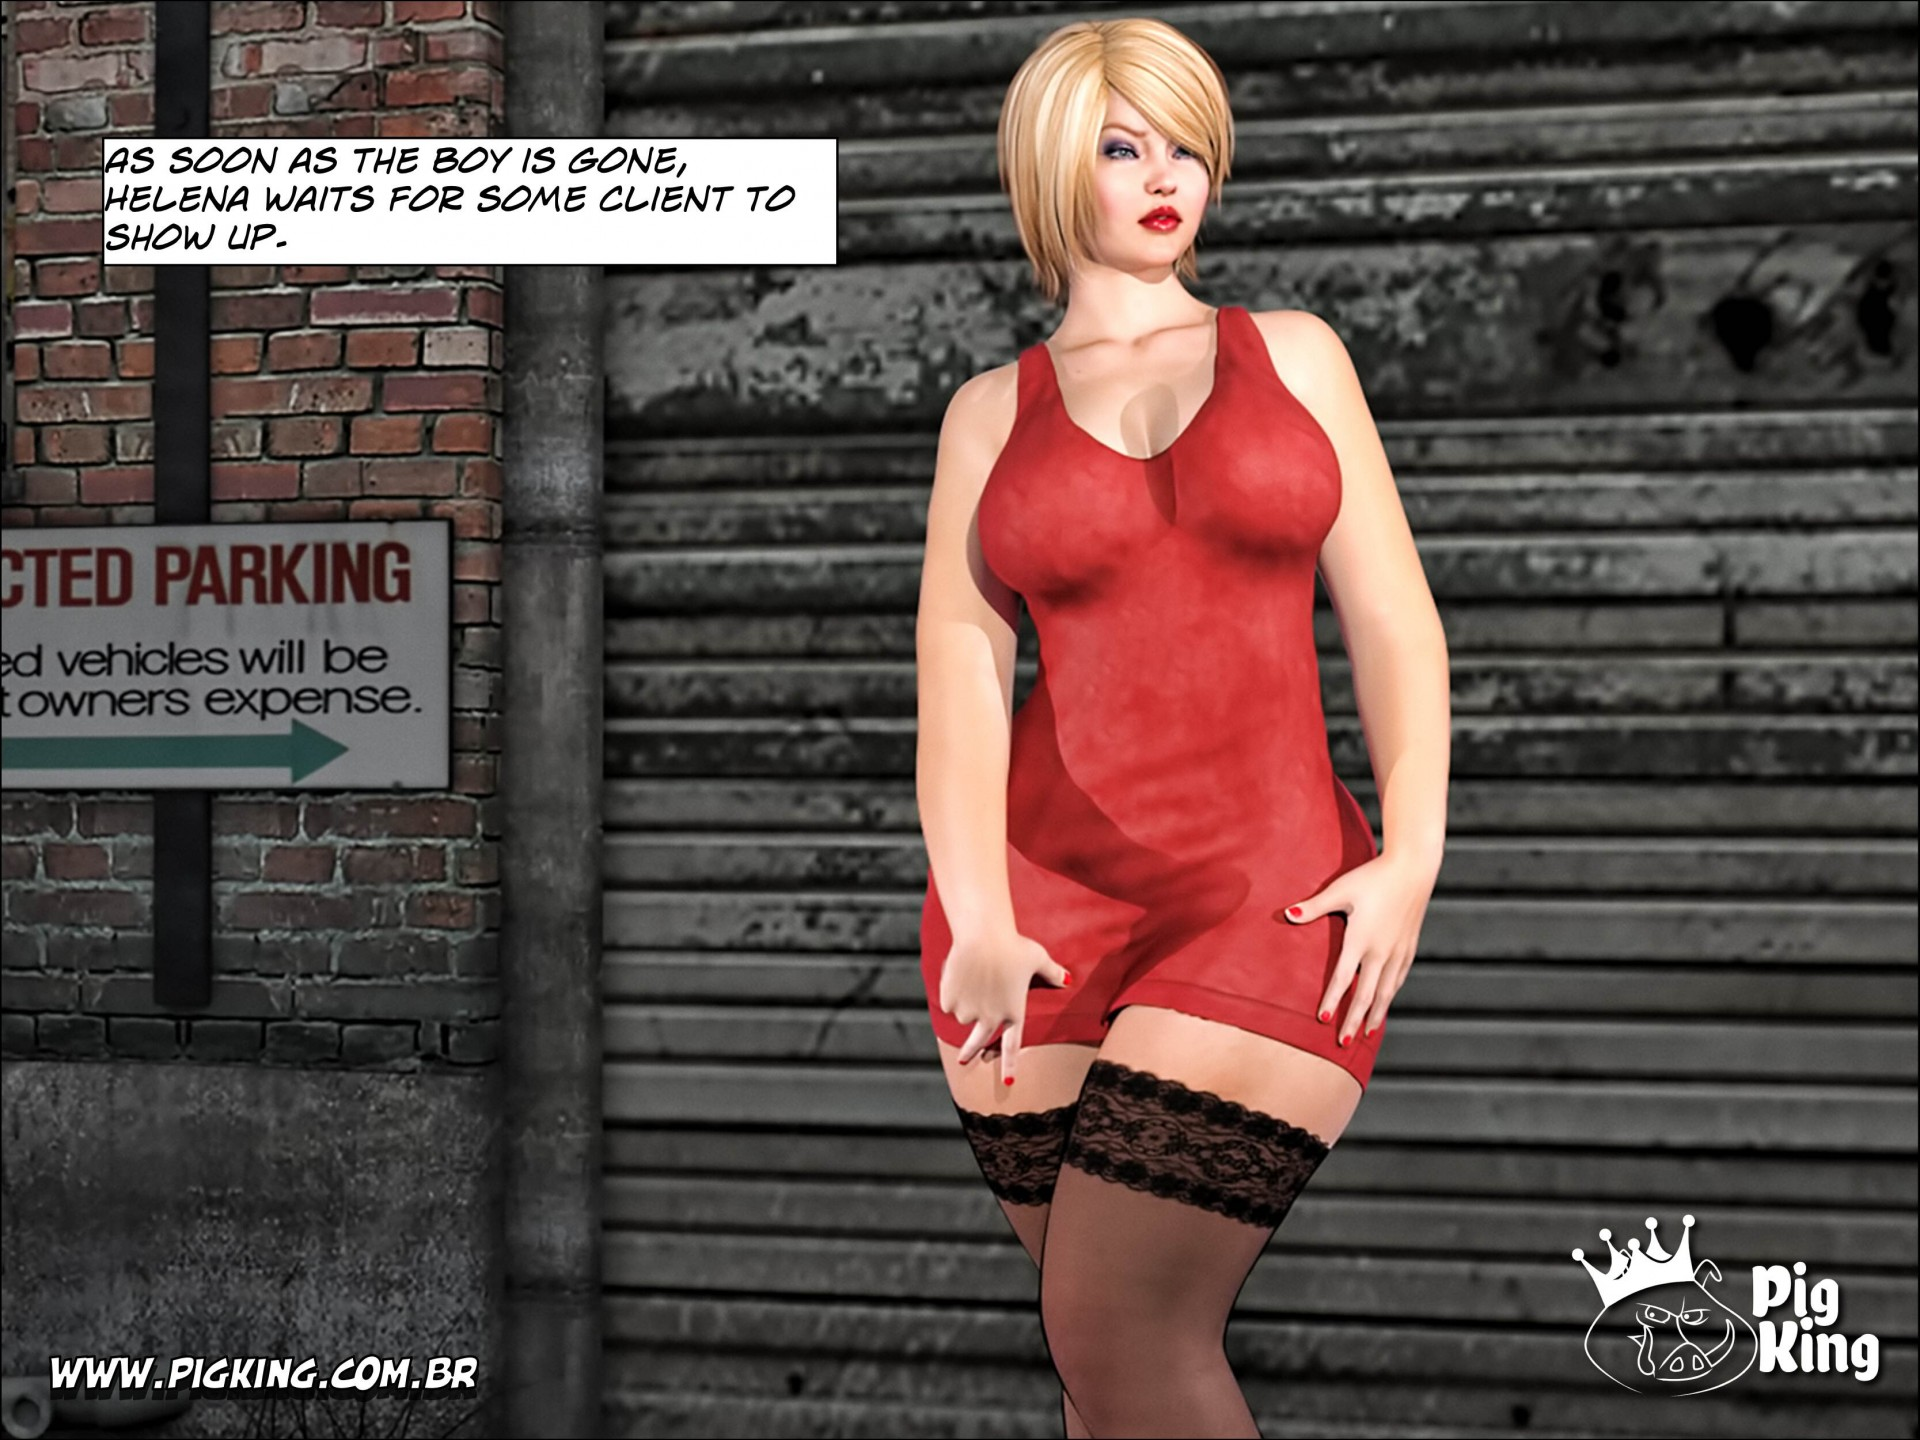 Dead End! Ch. 1 by Pig King